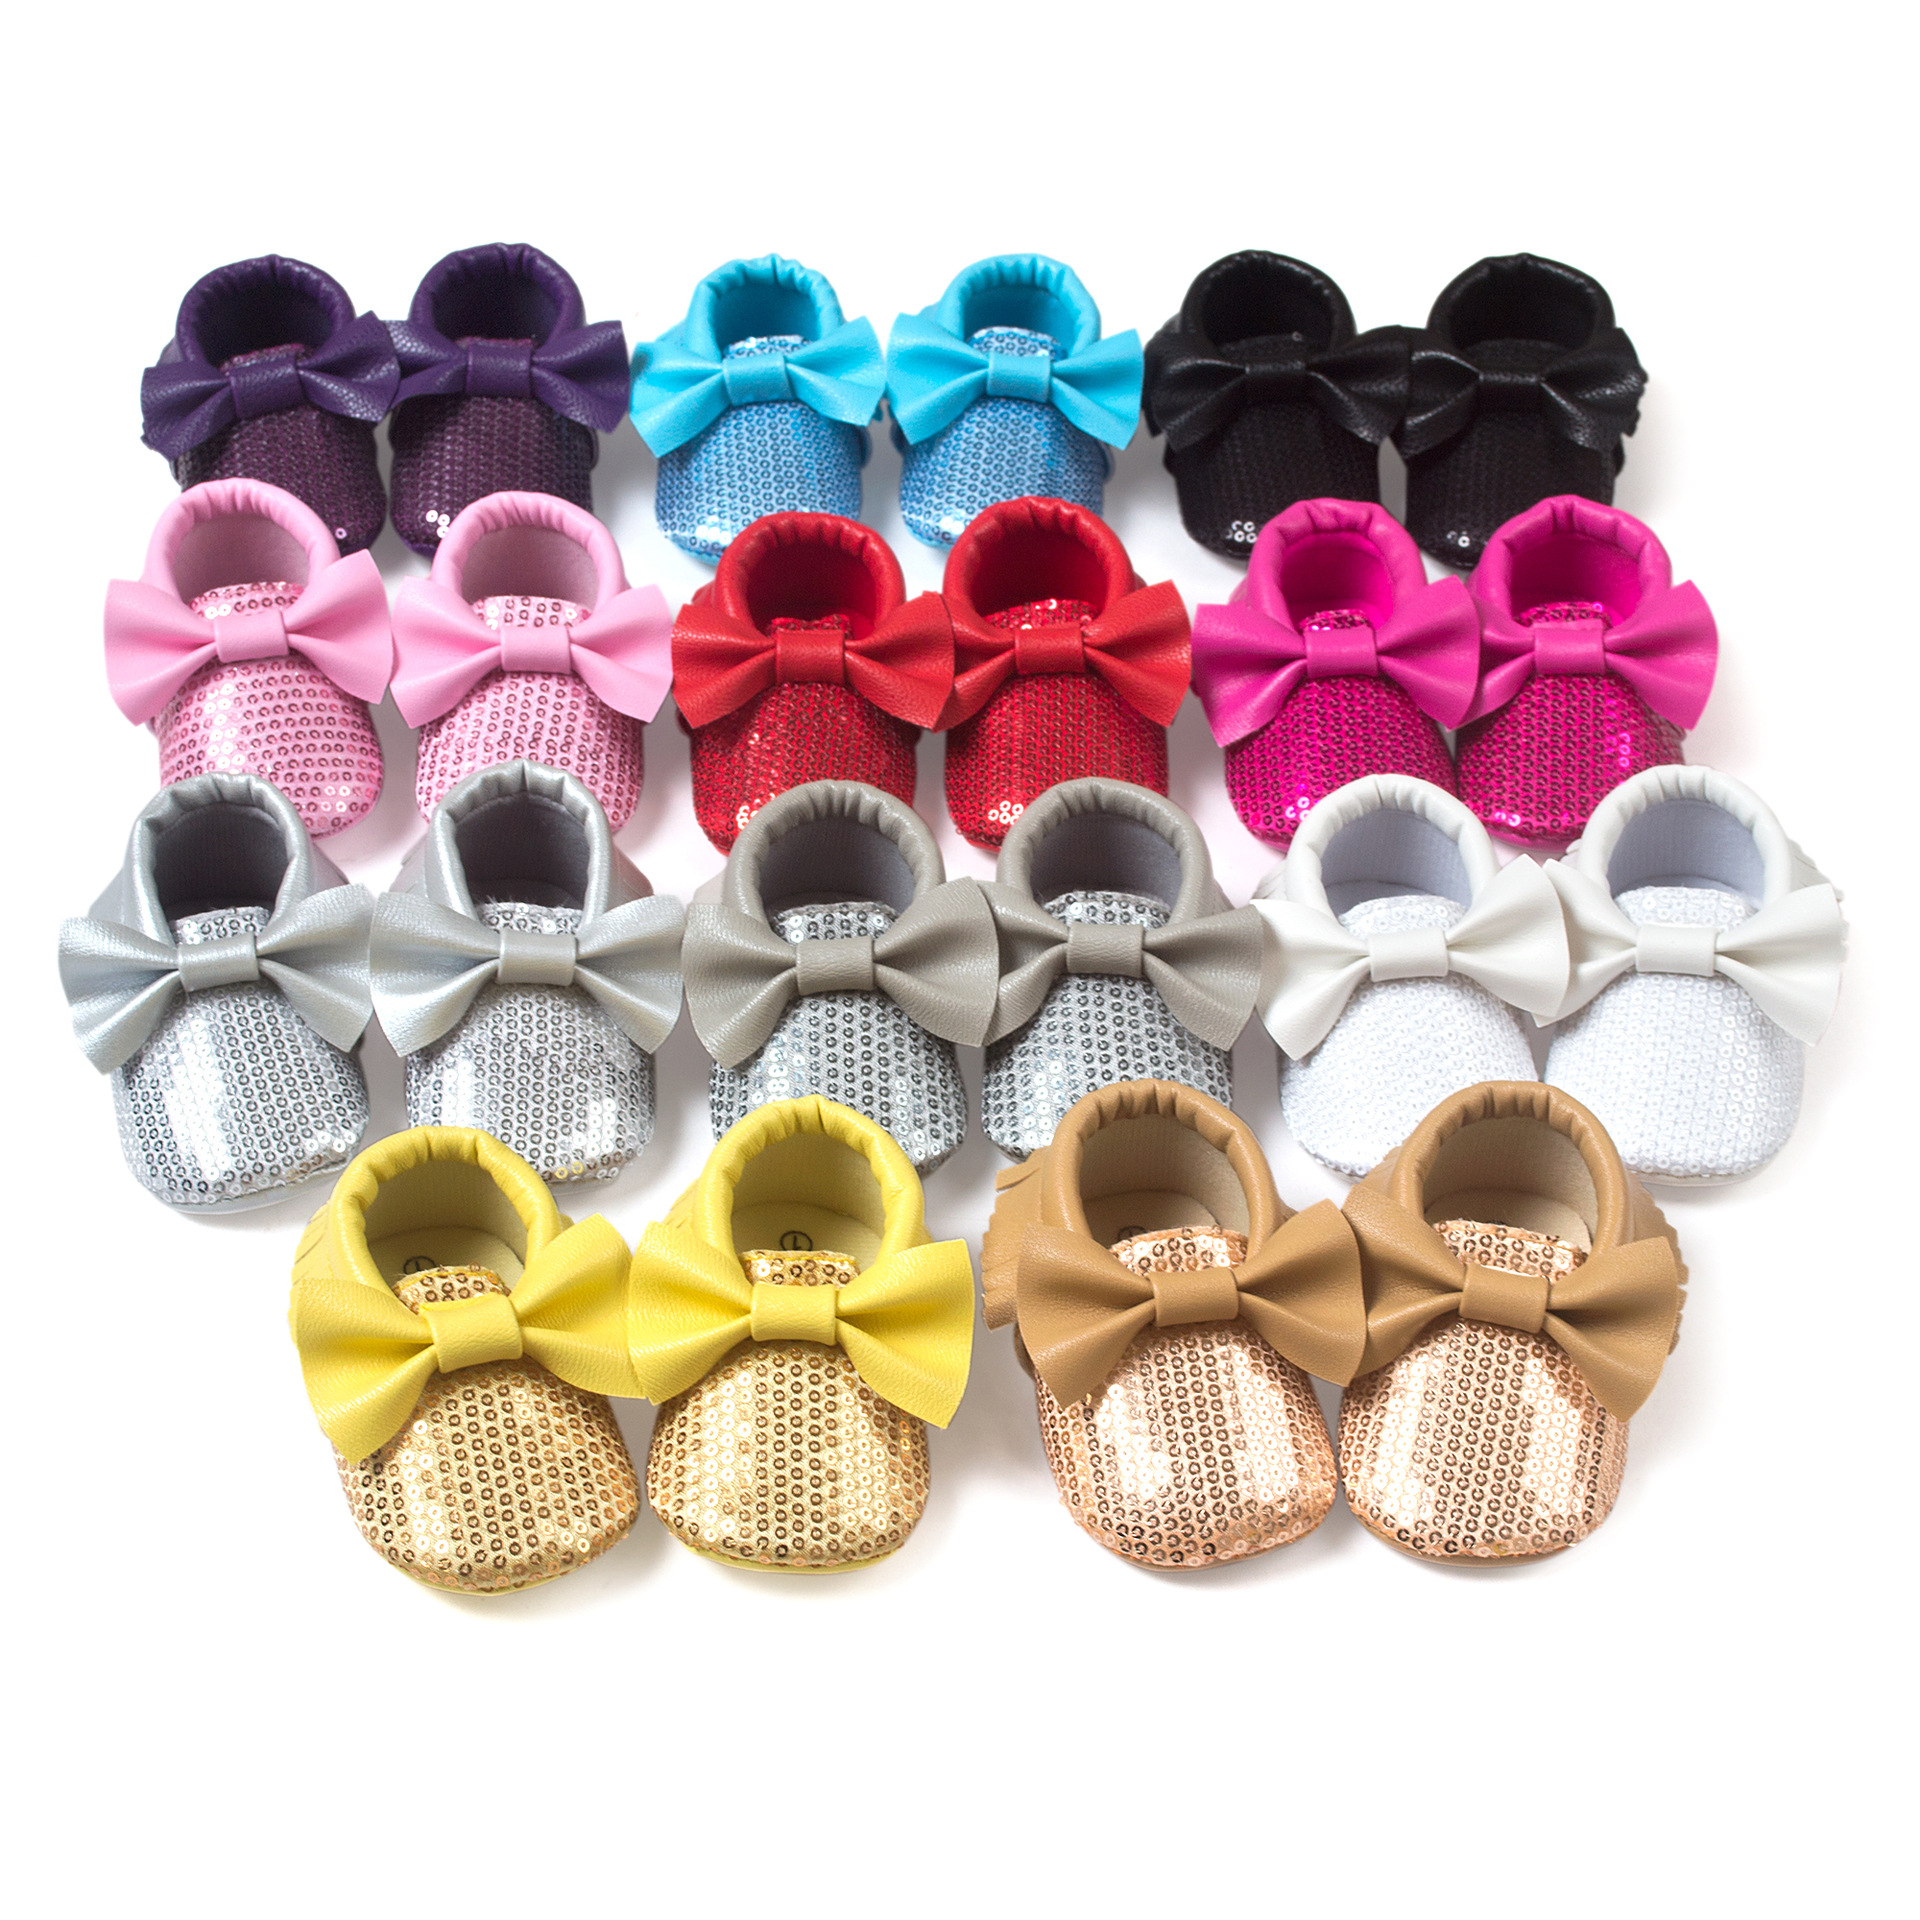 Fashion Sequins Baby Shoes Moccasins Tassel bowknot Infants Toddler Shoes Spring Autumn Girls Shoes Newborn Gifts